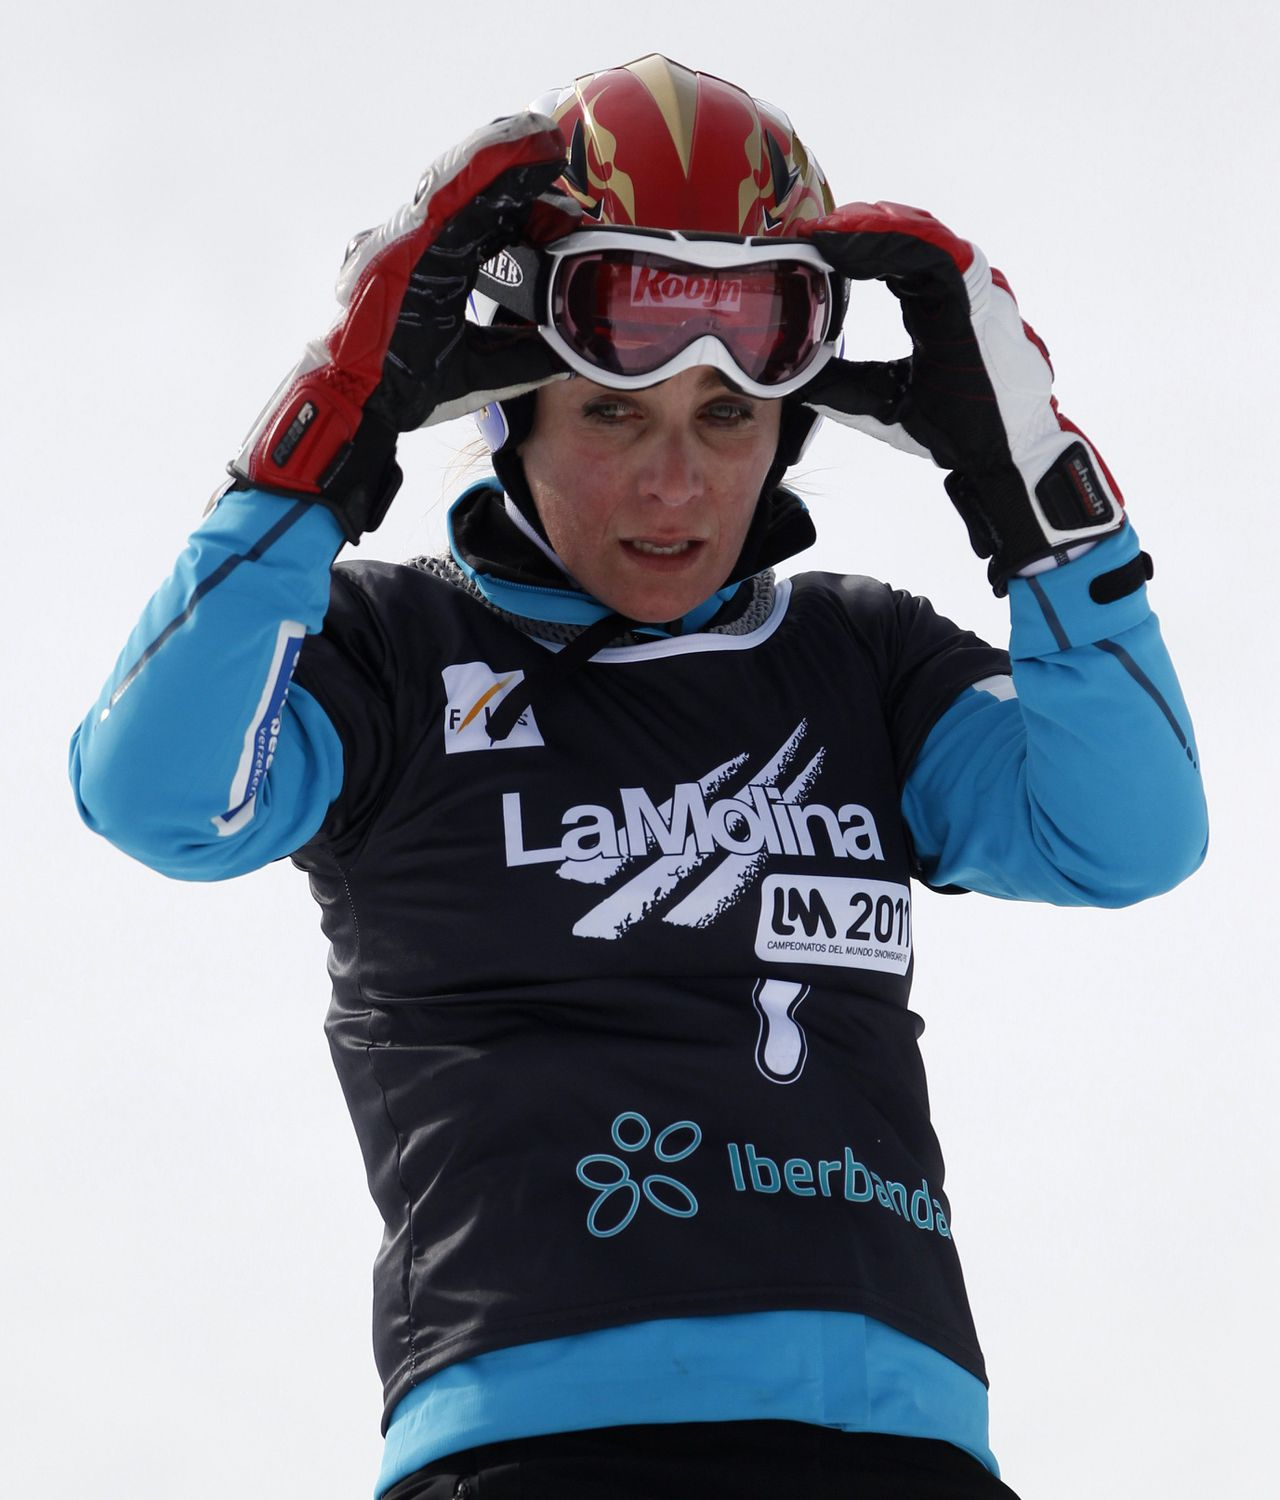 Nicolien Sauerbreij na haar uitschakeling op de WK. Foto Reuters Netherlands' Olympic Champion Nicolien Sauerbreij reacts after losing in the heats of the women's Snowboard Parallel Giant Slalom at the FIS Snowboard World Championships in La Molina January 19, 2011. The championships take place in Barcelona and La Molina from January 15 to 22. REUTERS/Susana Vera (SPAIN - Tags: SPORT SNOWBOARDING)